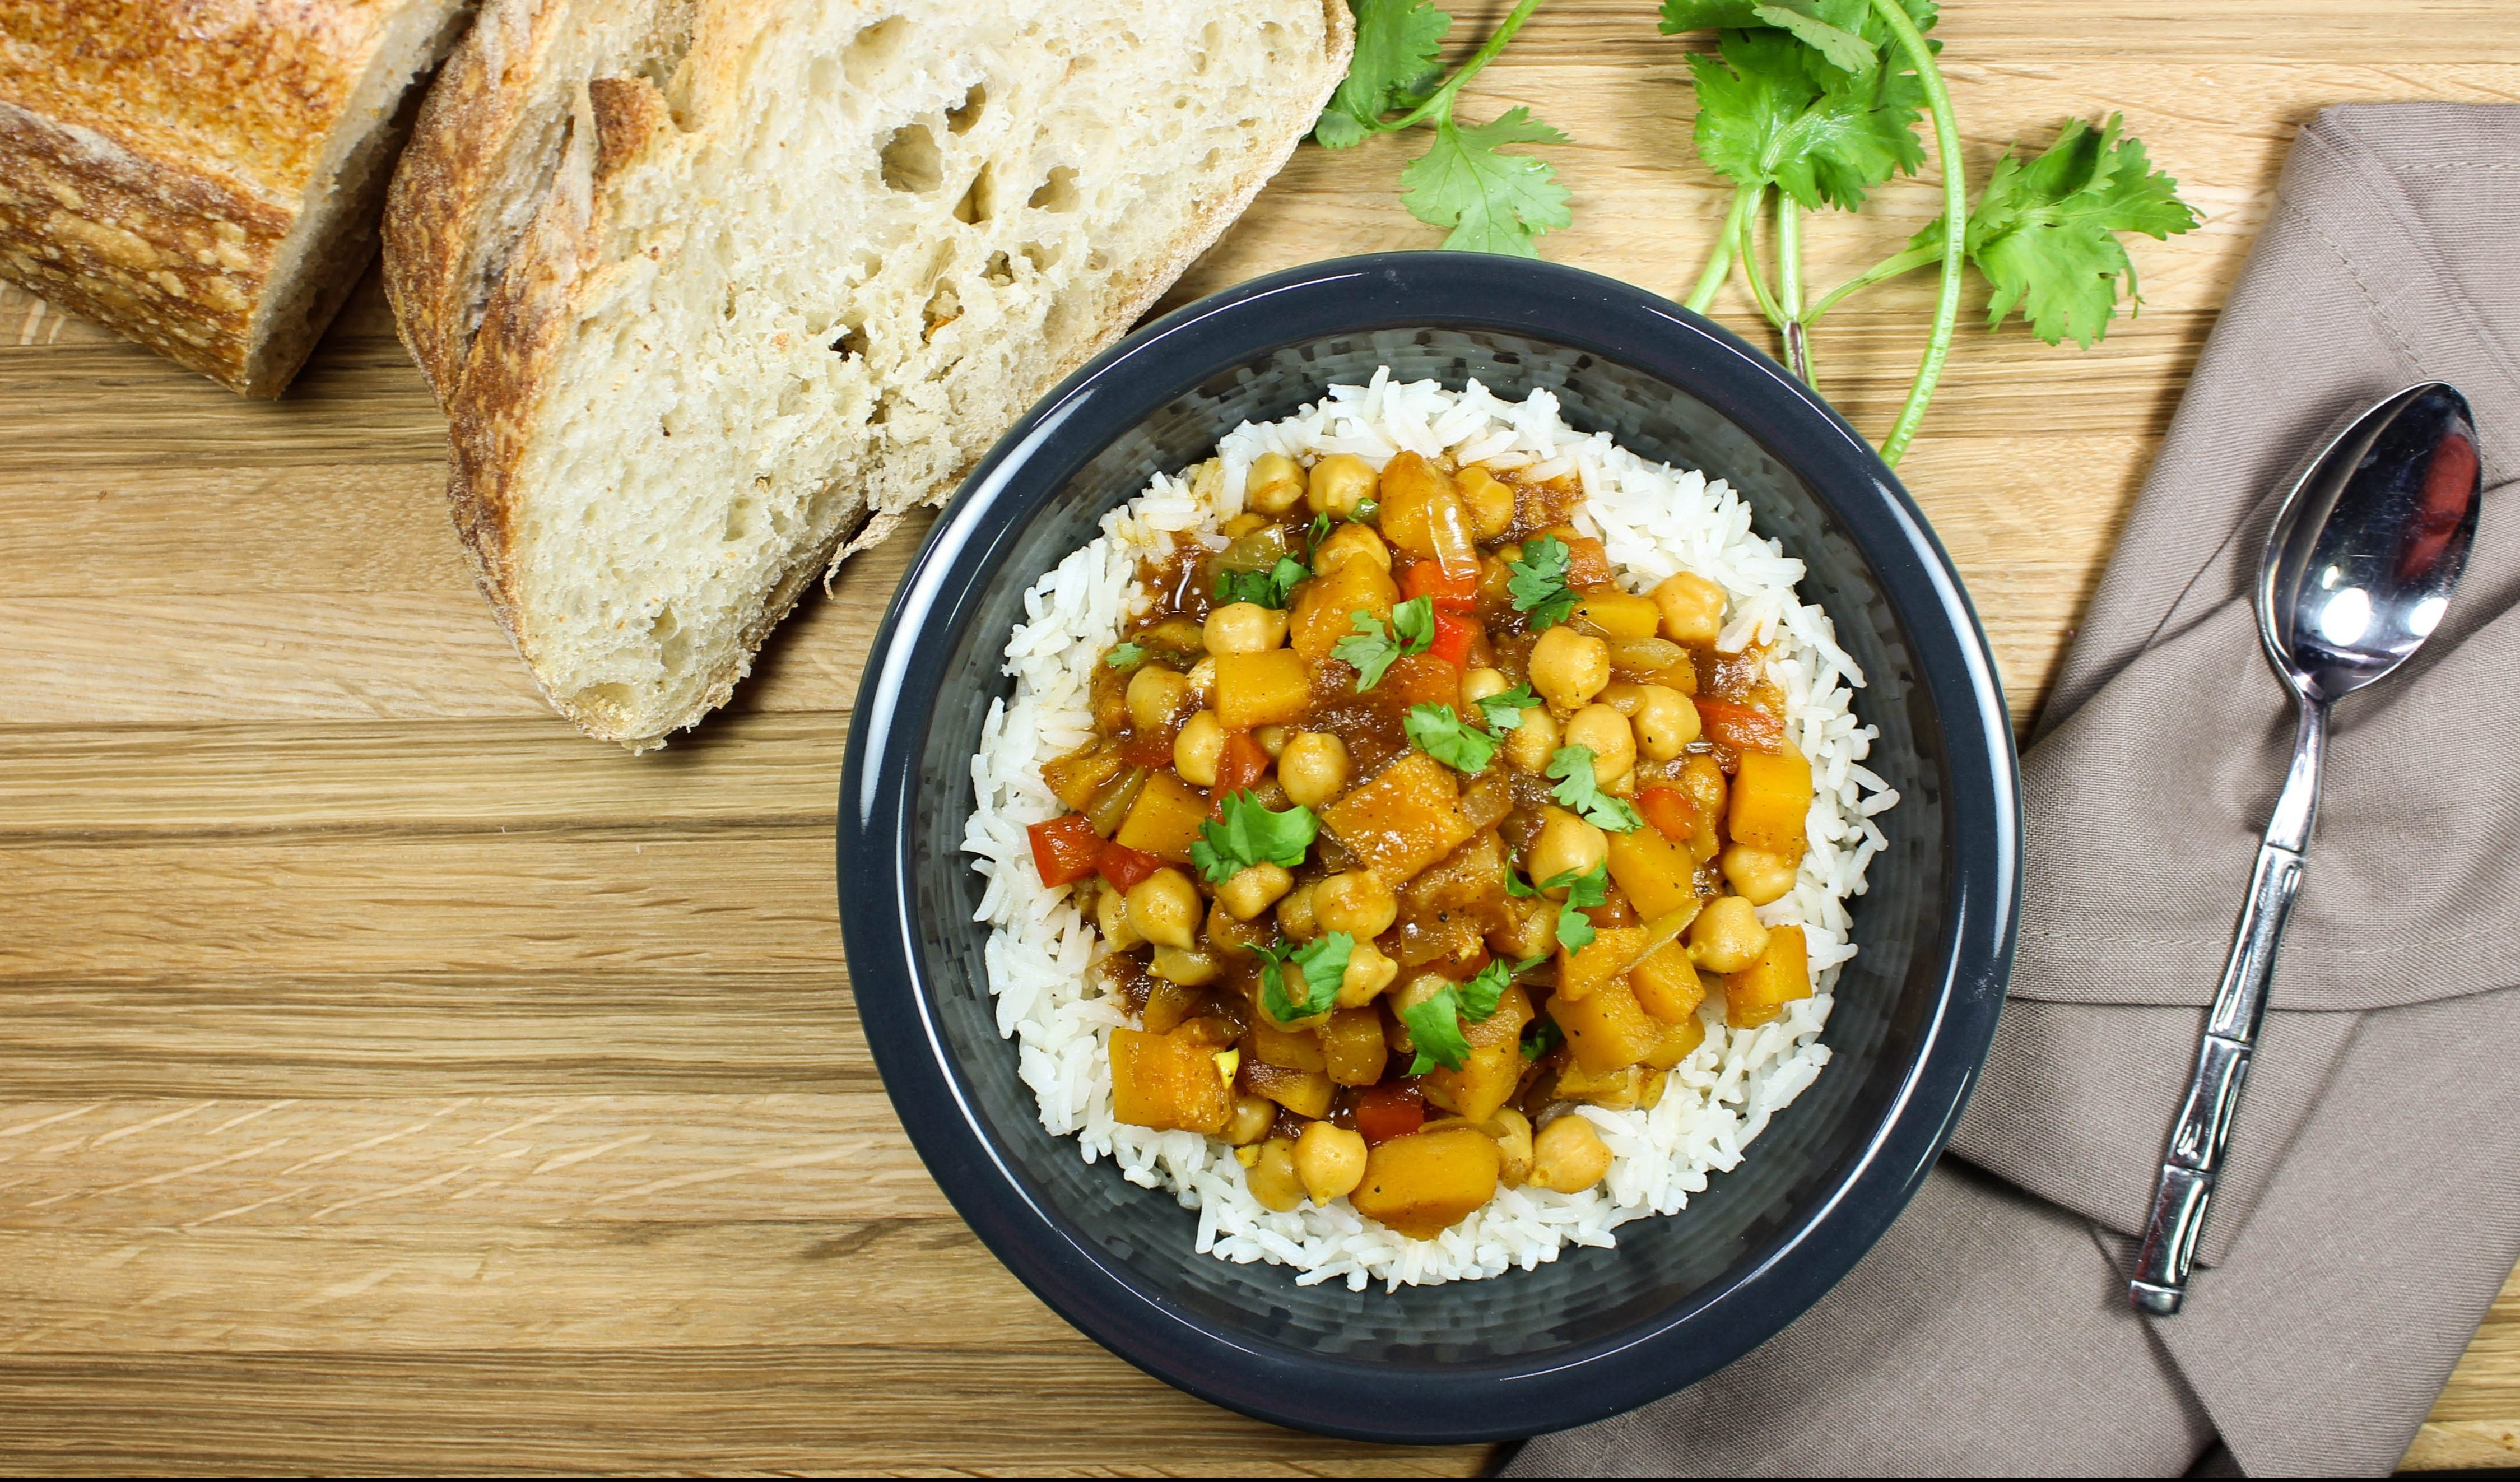 Indian Chickpea Stew-Unique twist on vegetable stew! Delicious Indian spices mixed with hearty vegetables is comfort in a bowl. Great for anyone who is a beginner to Indian food! Spices are sweet with just a hint of spice. Weight Watchers friendly recipe. www.bitesofflavor.com